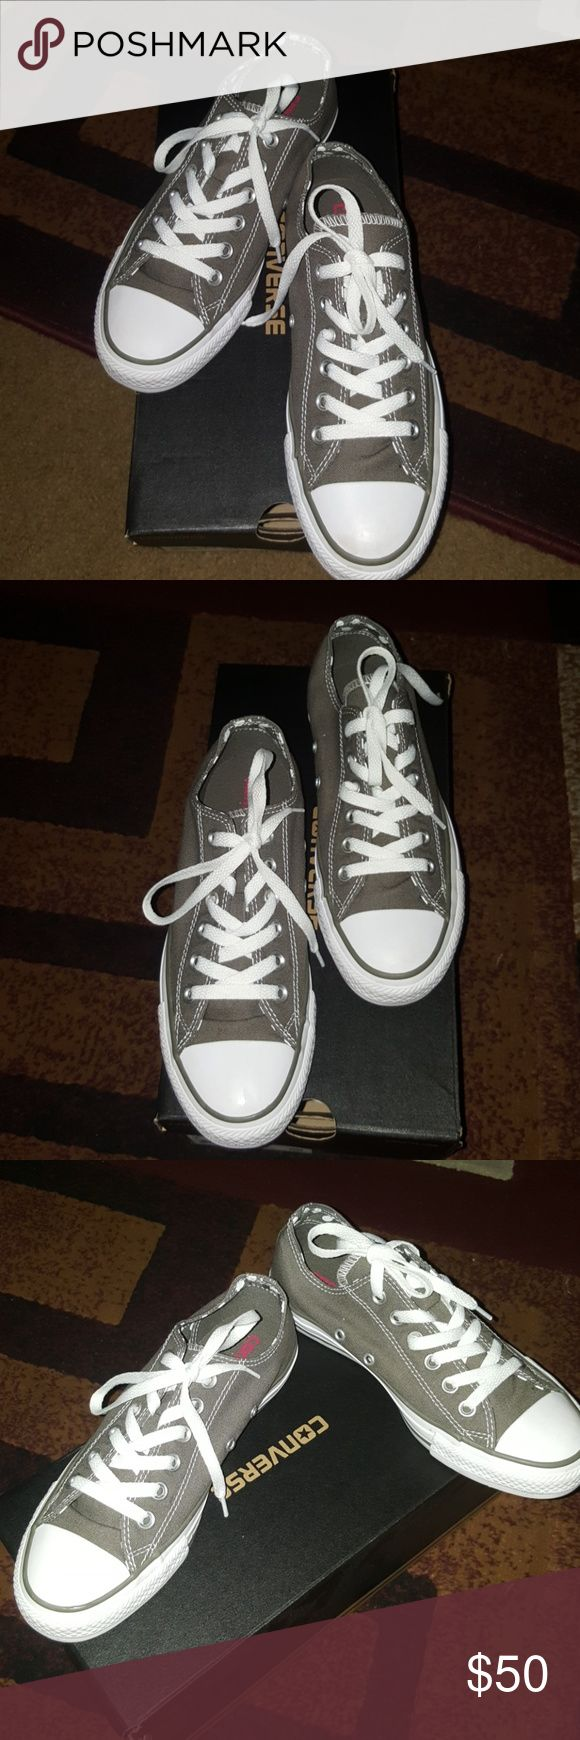 🔔FLASH SALE Women's  Converse Women's Converse Like New Color Charcoal/White  In great condition  Used only once and kept it in the box since Has a nice polka dots design  to it No rips No stains  No holes No rips Odor Free  Make me an offer Converse Shoes Sneakers